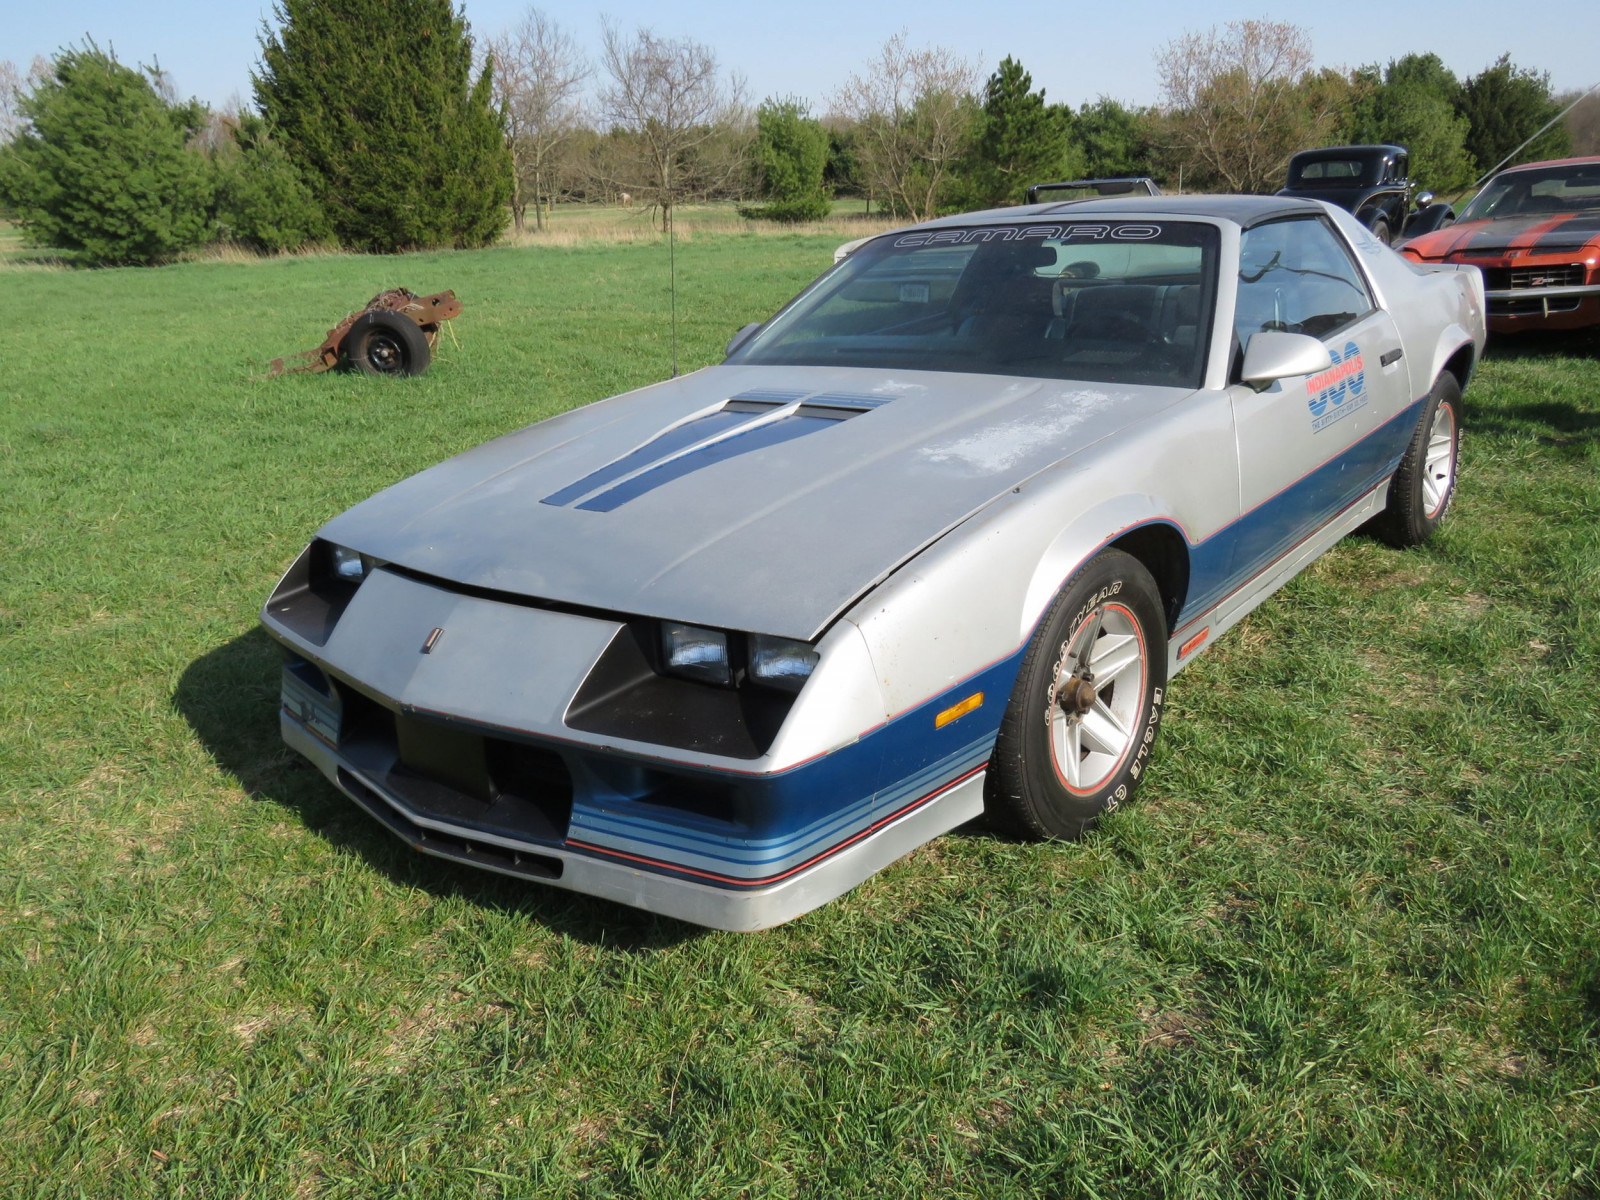 1982 Chevrolet Camaro Indianpolis 500 Edition Pace Car - Image 1